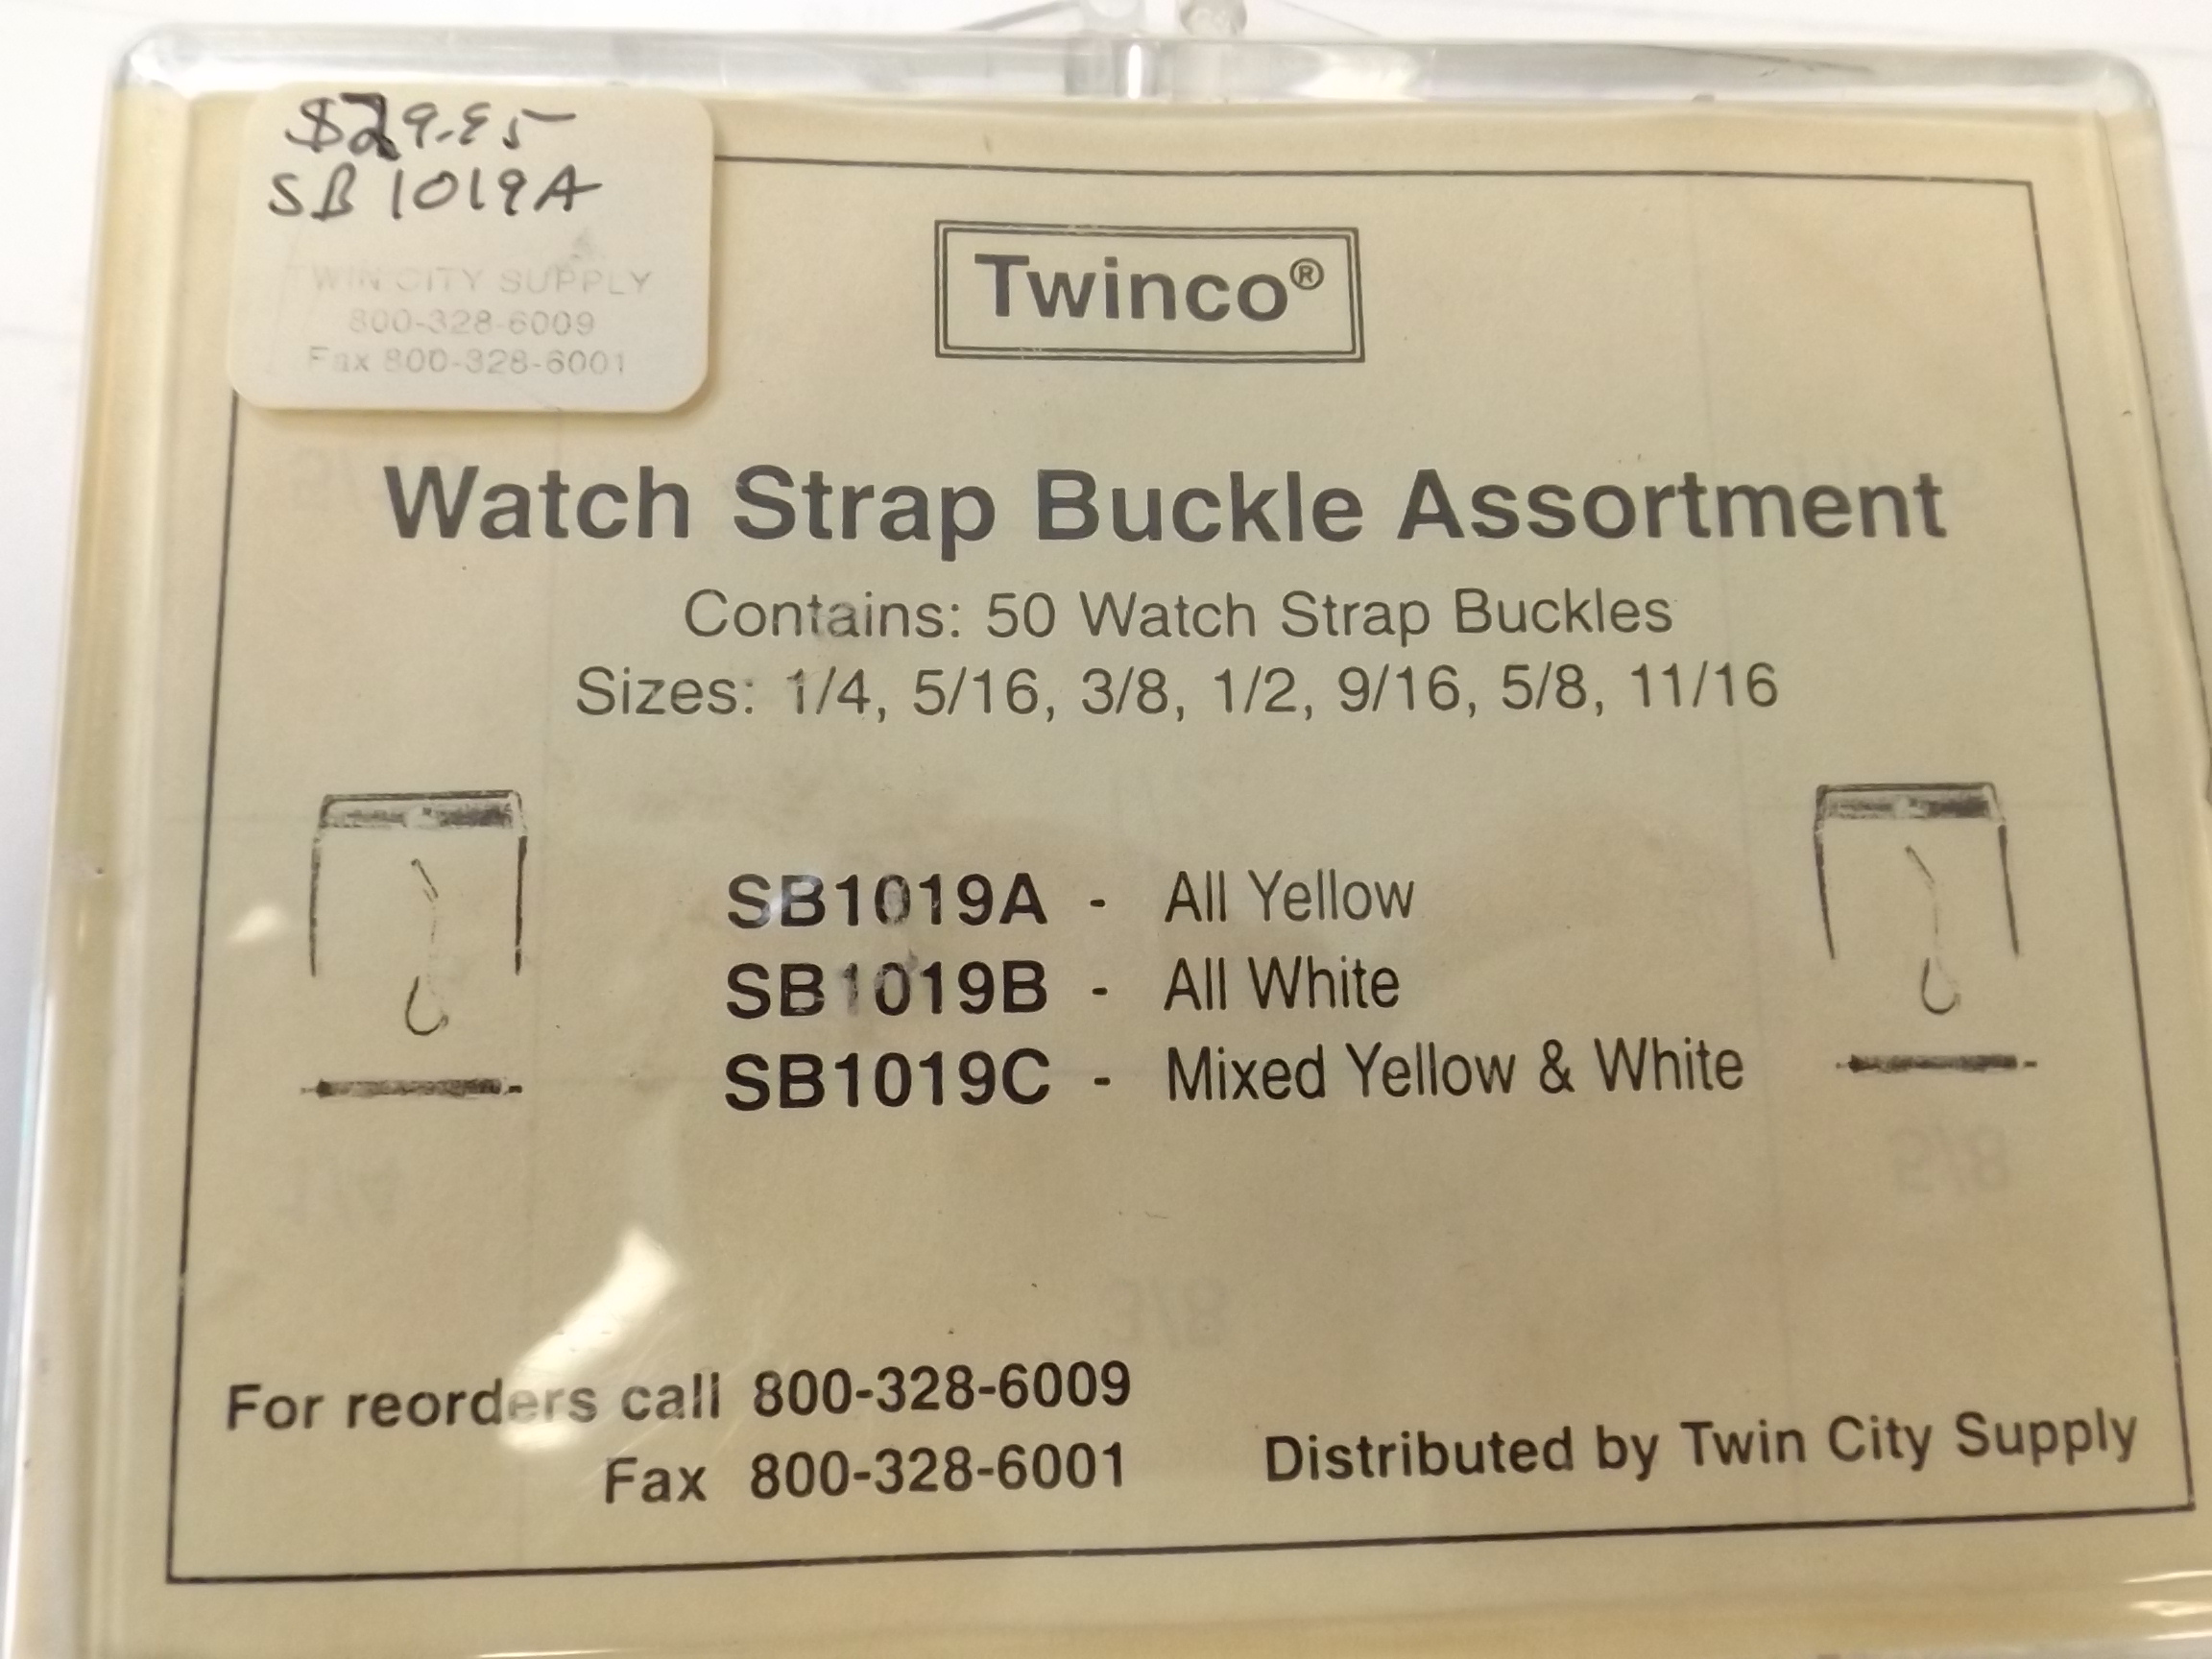 SB1019A Watch Strap Buckle 50 piece Assortment -Yellow